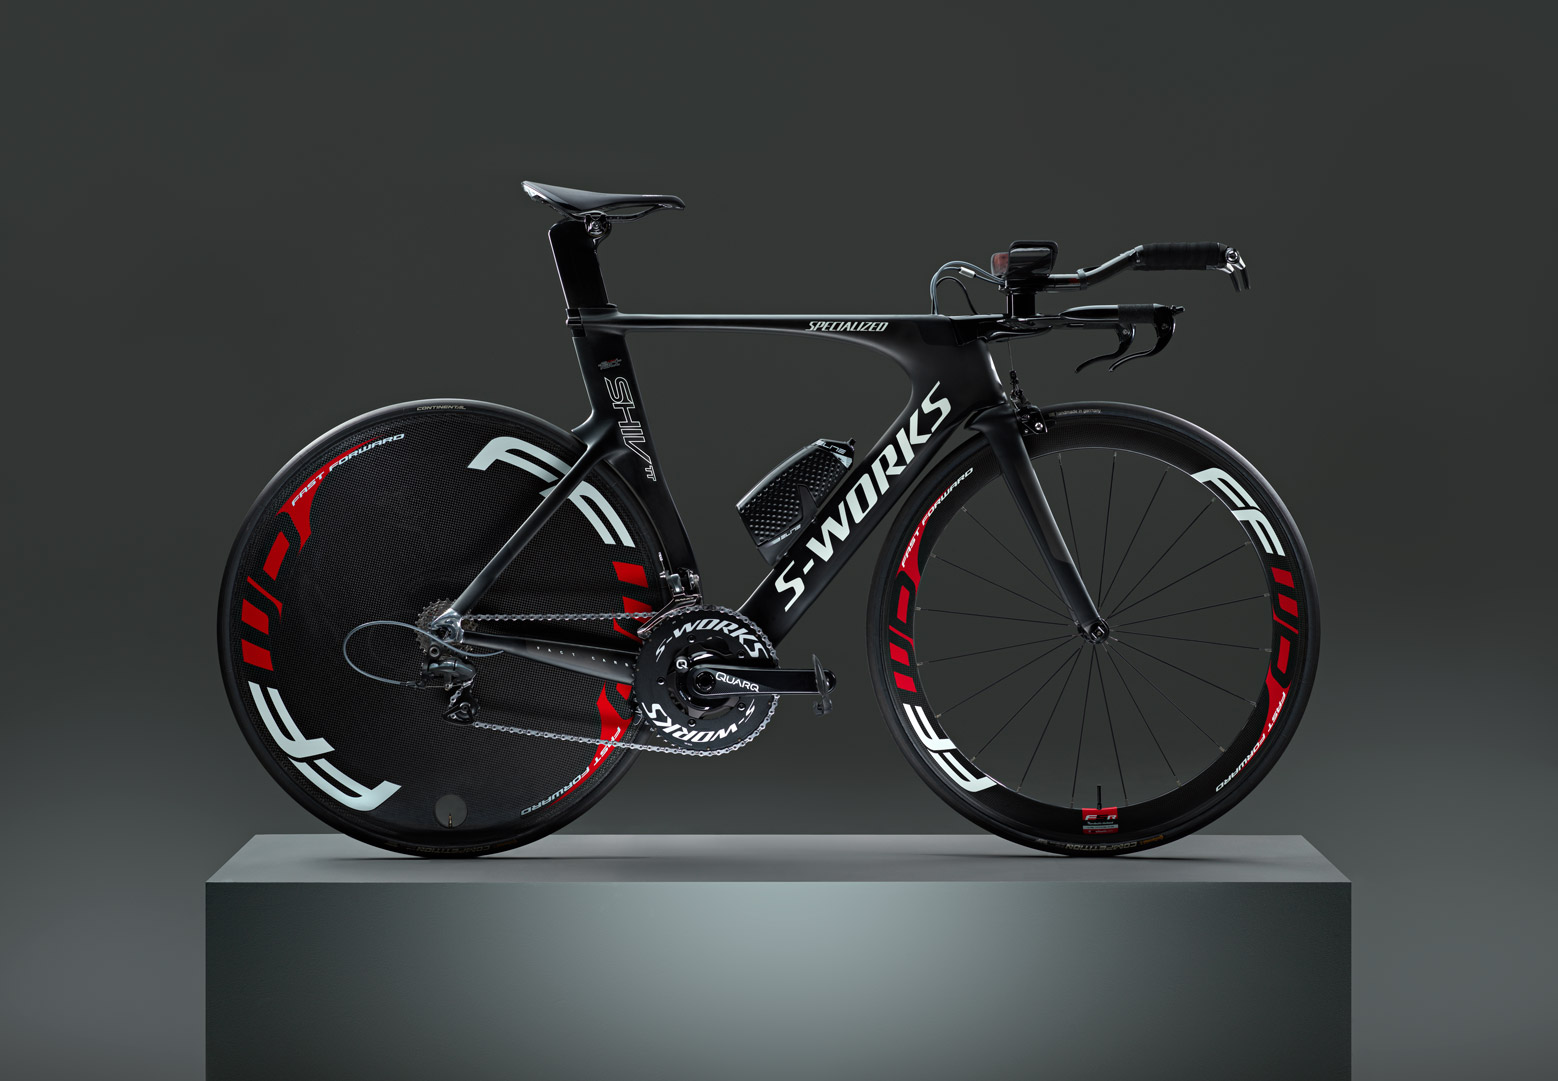 Product photo of a Specialized time-trial racing bicycle